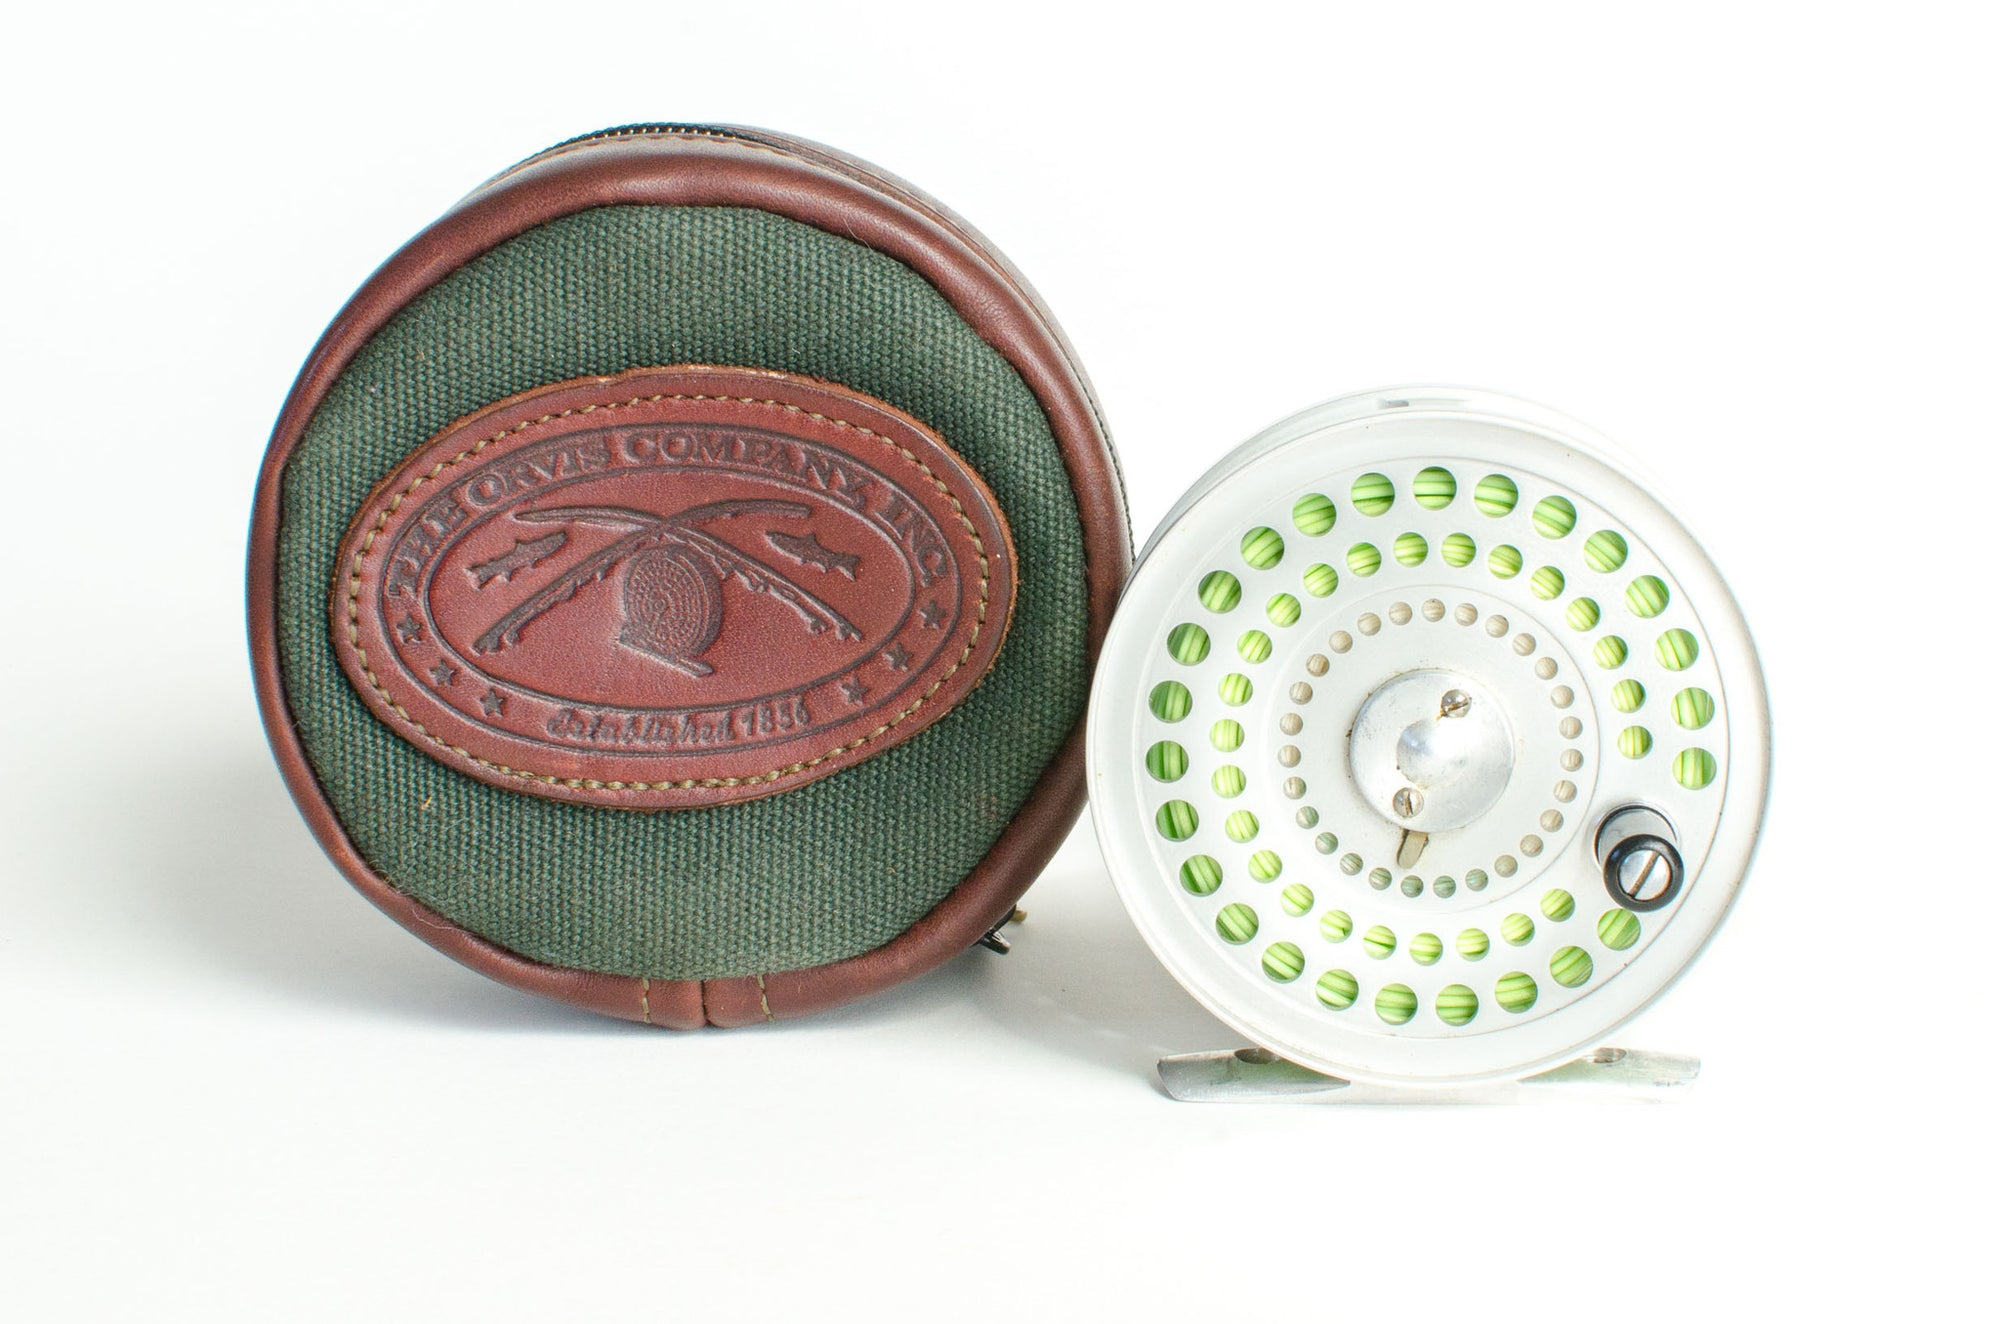 Orvis CFO III Silver Limited Edition